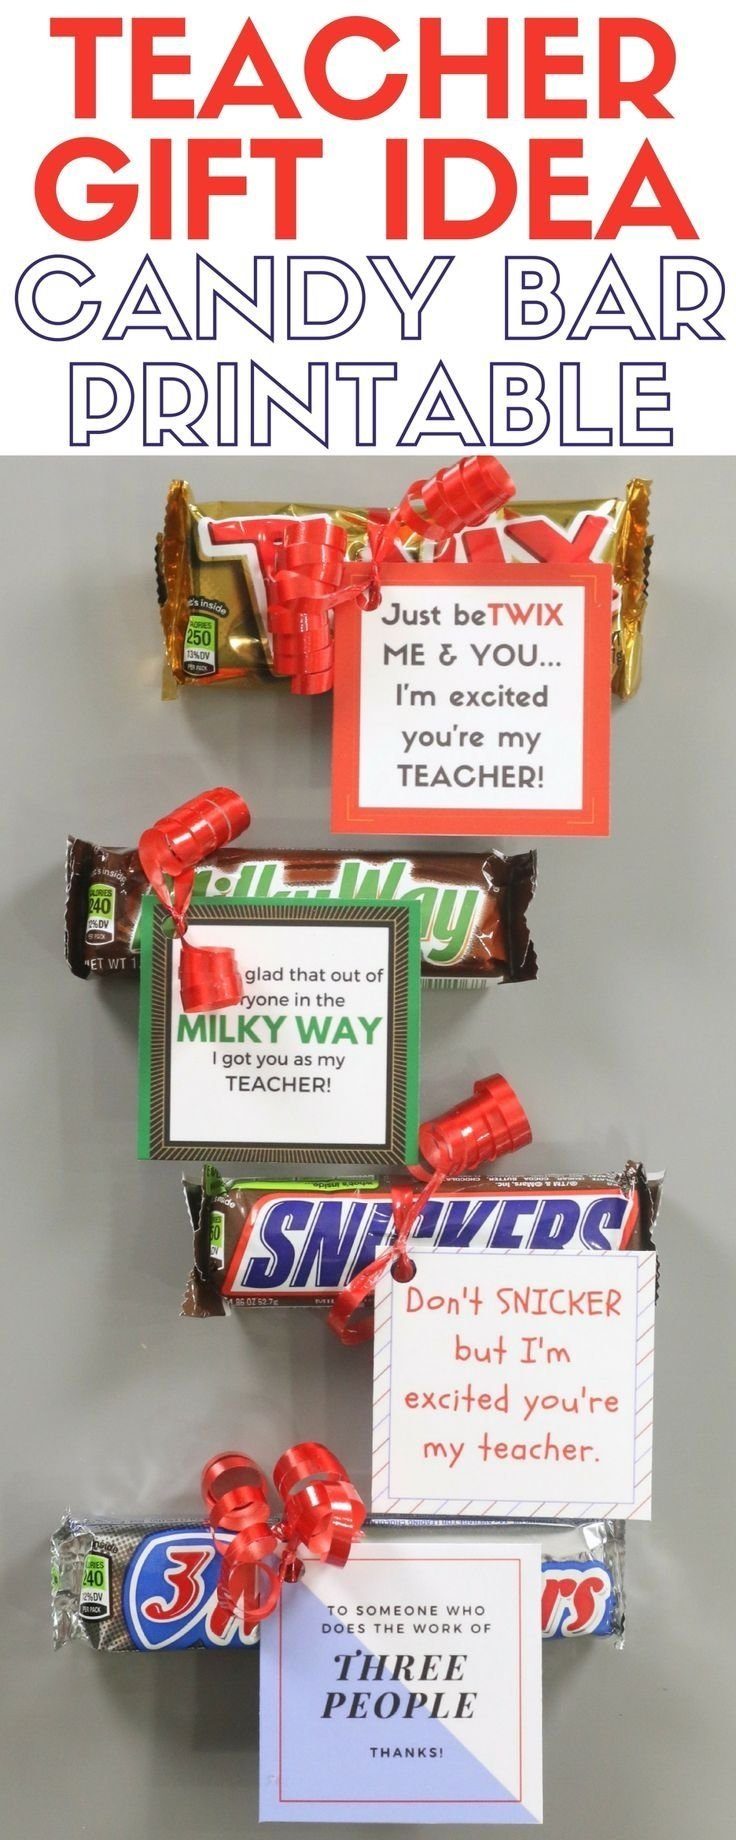 how to make a candy bar printable teacher gift idea | ribbon crafts